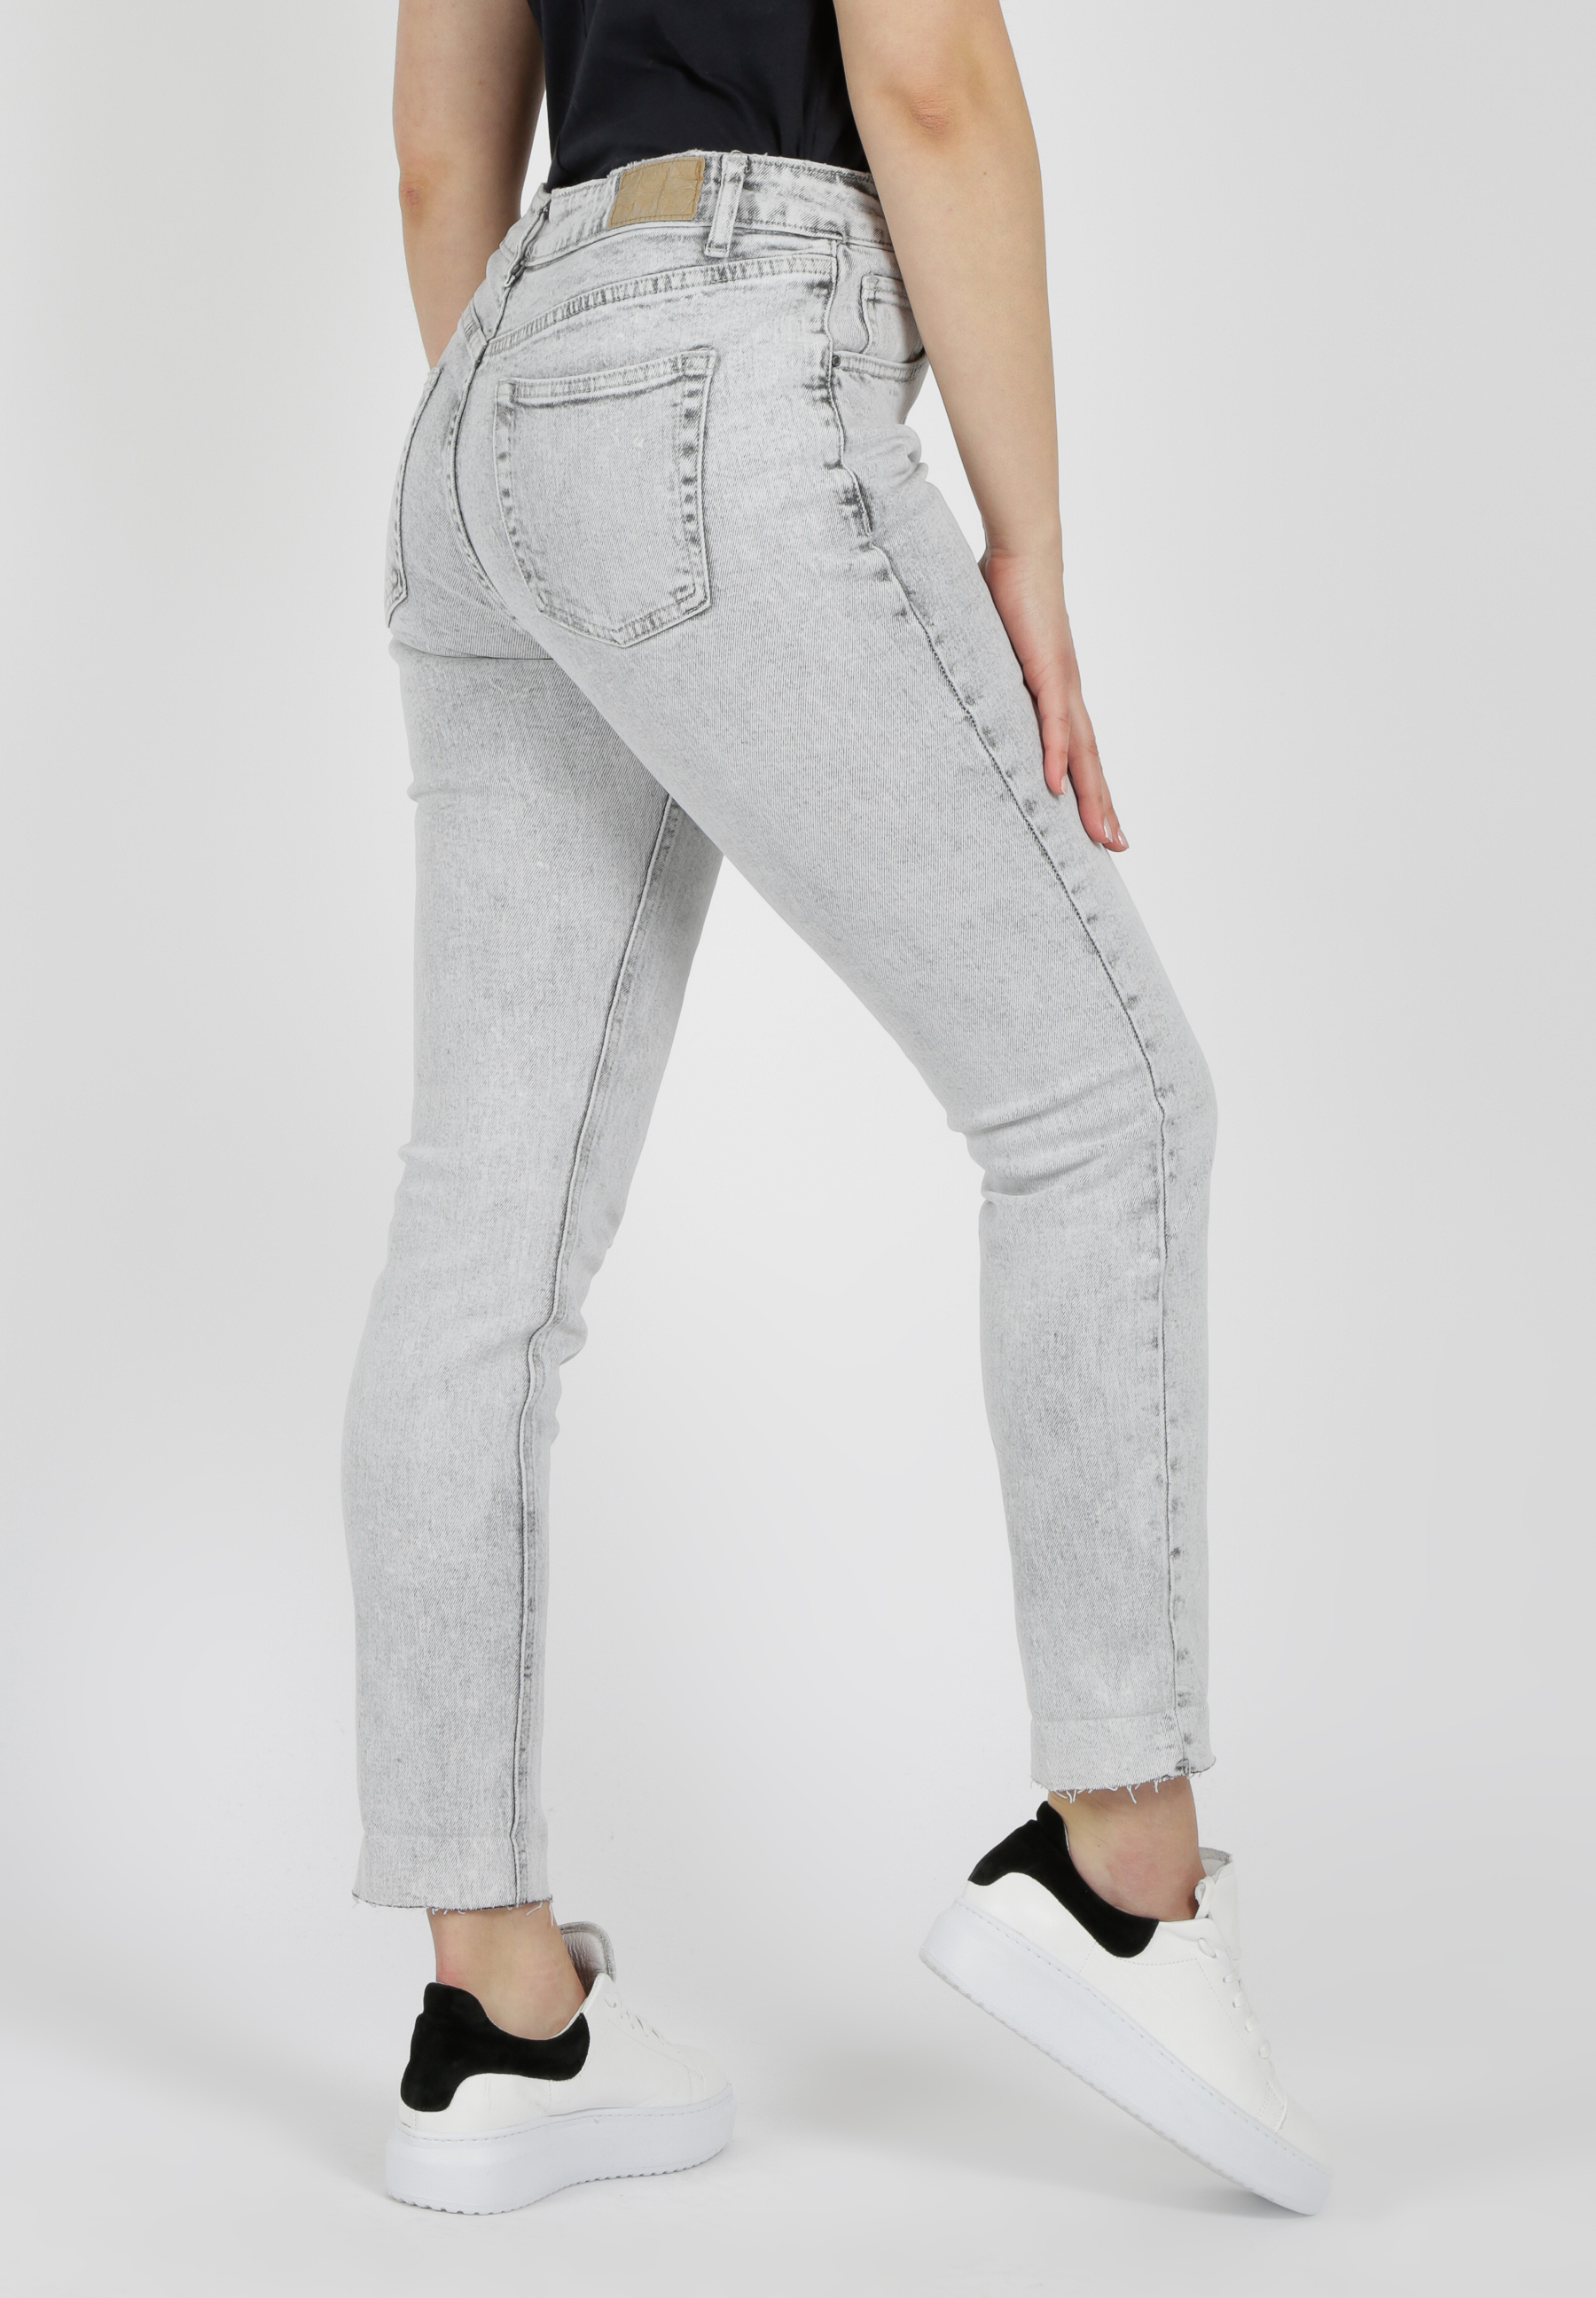 80's grey washed Jeans